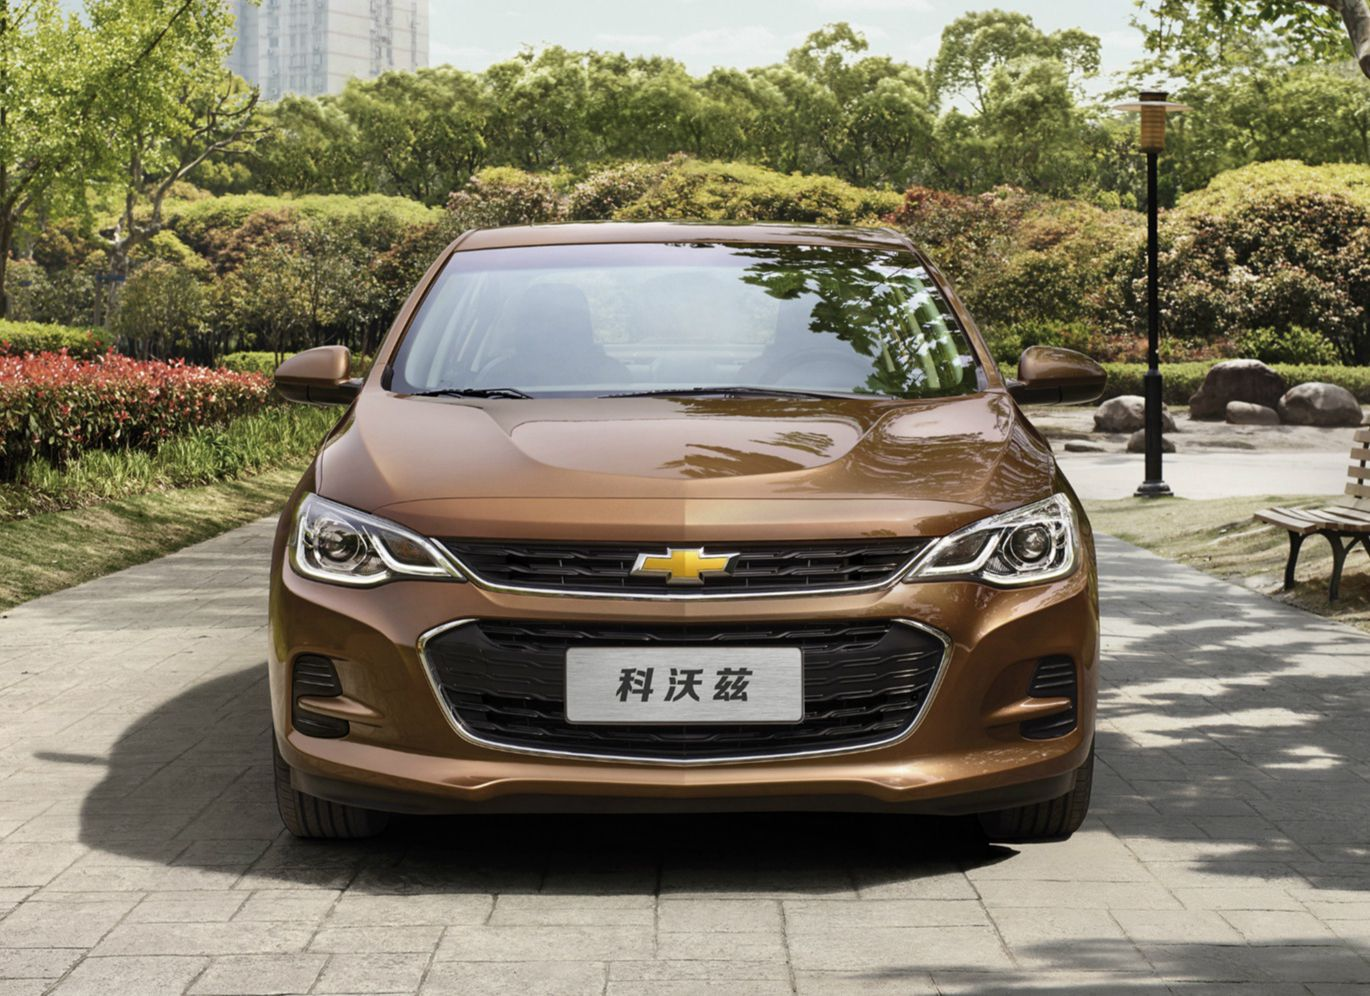 Chevrolet Bringing Back Cavalier as Compact Sedan for ...